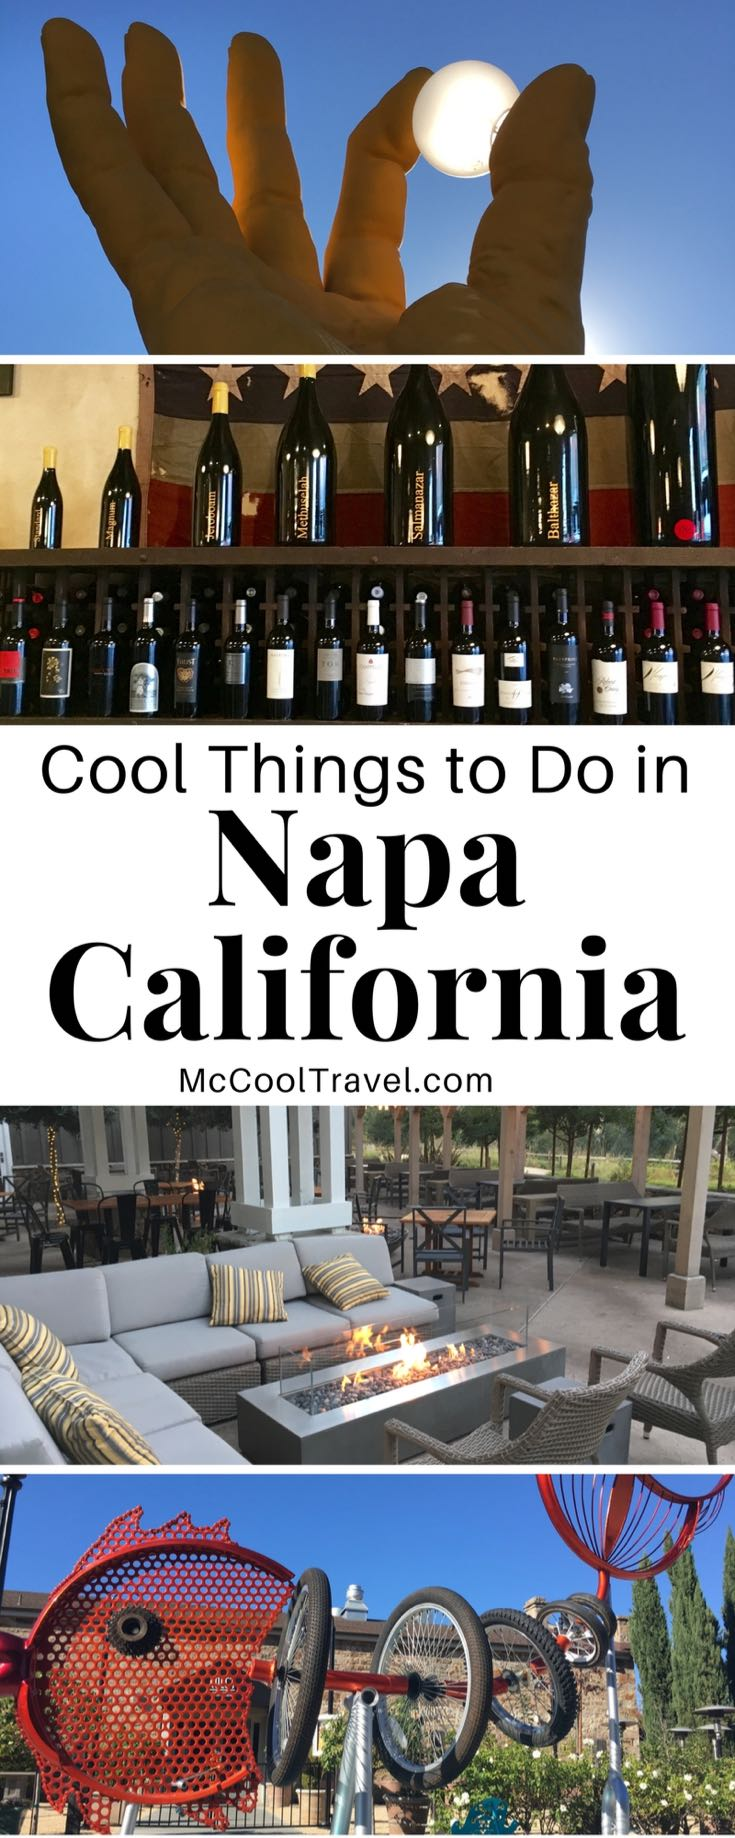 Napa California is known for its wine but the area is also home to amazing public art, incredible and eclectic dining options, fun outdoor activities. Cool things to do in Napa California. Where to eat in Napa. Places to stay in Napa.